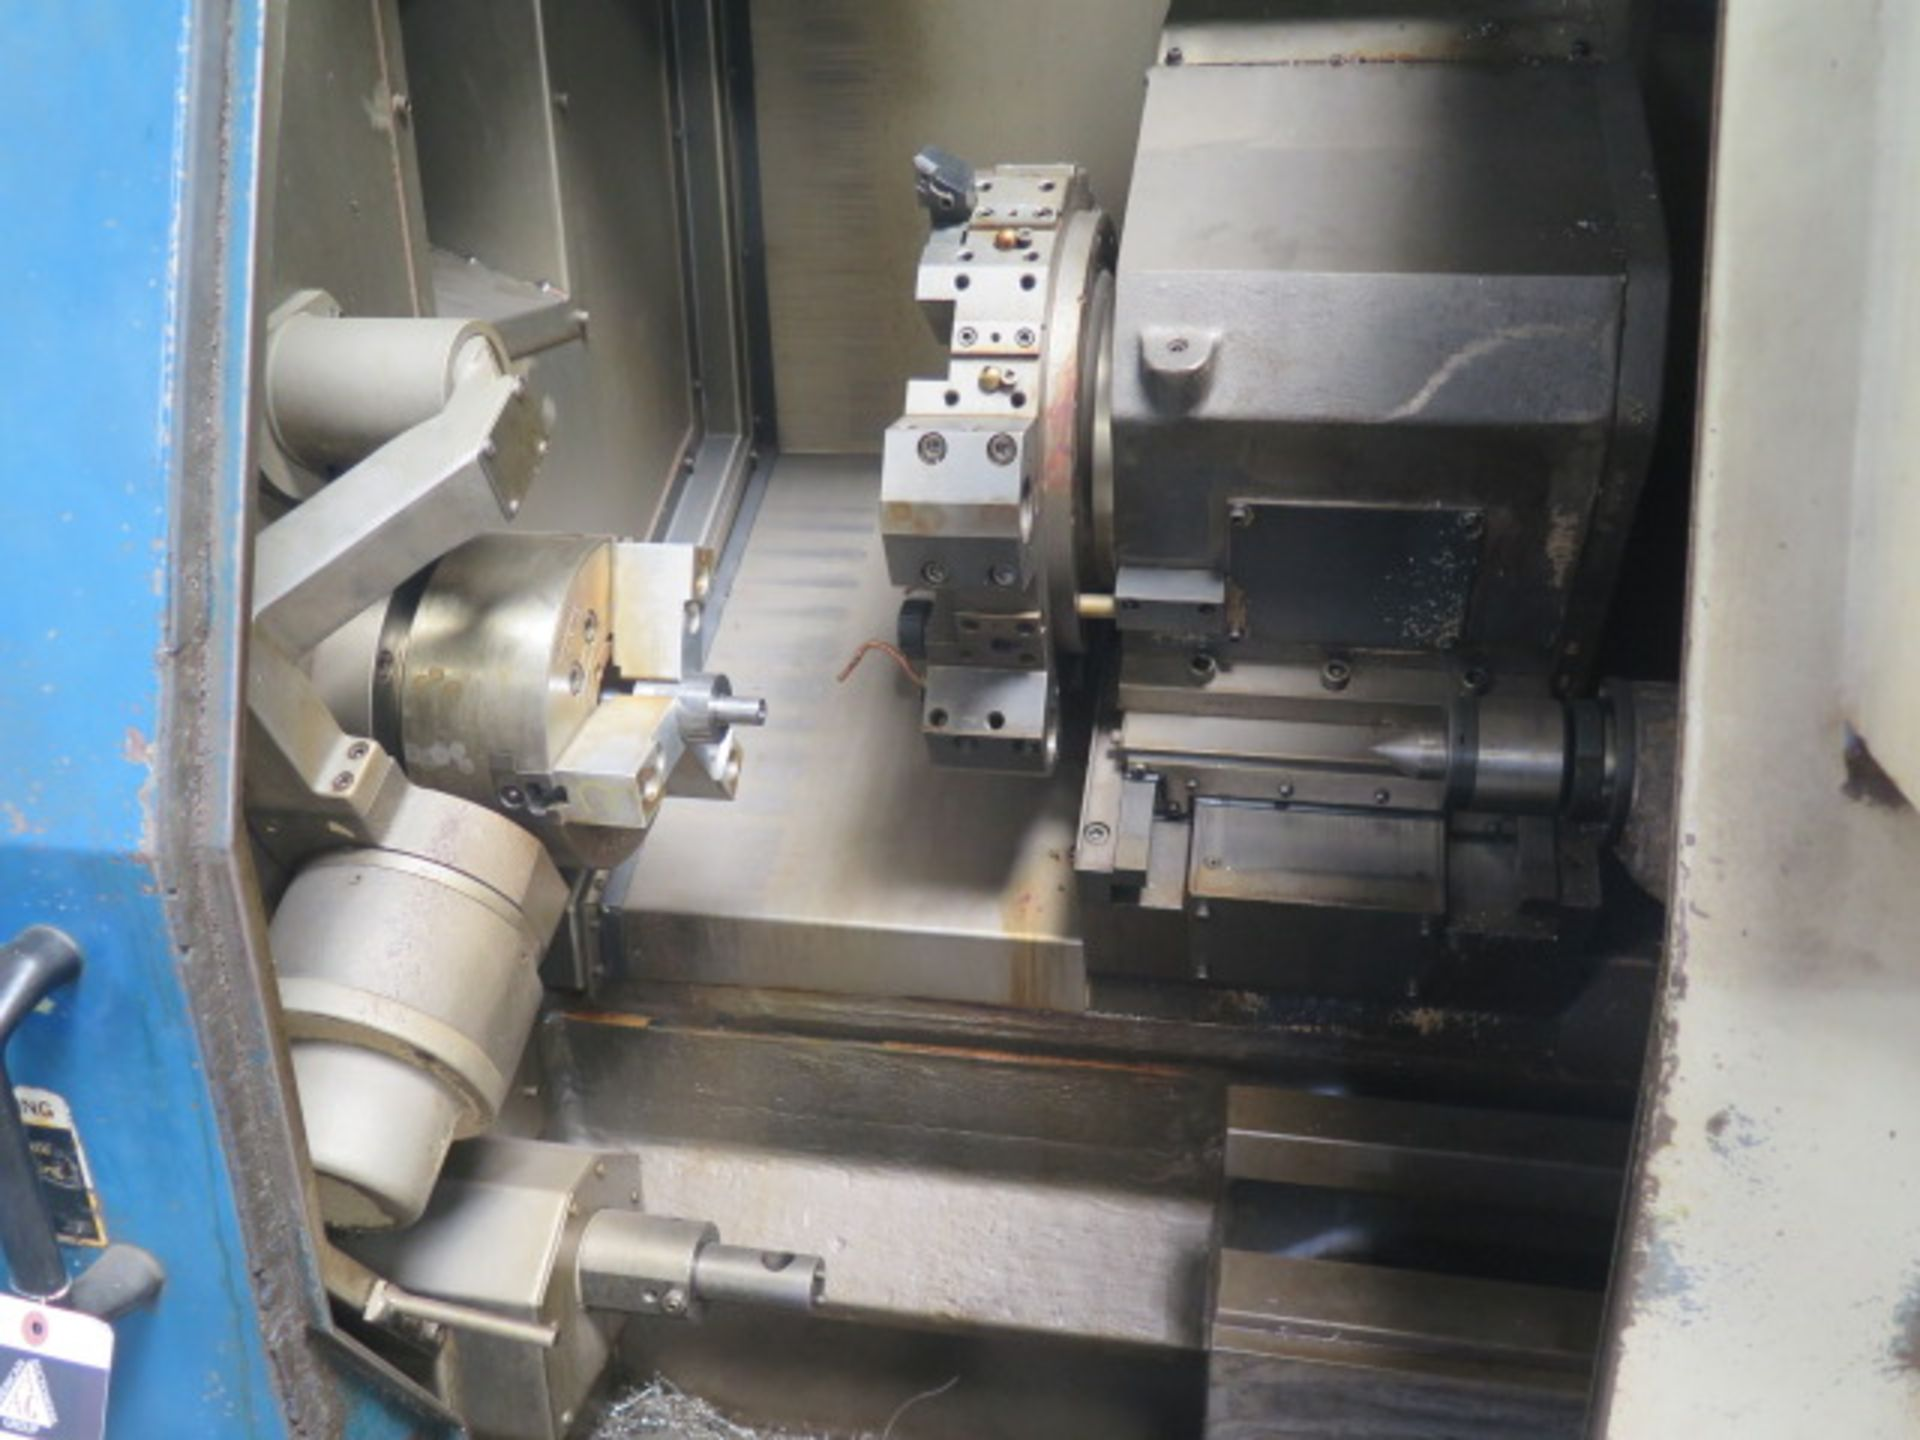 1996 Daewoo PUMA 8S CNC Turning Center s/n PM8S0500 w/ Mits Controls, Tool Presetter, SOLD AS IS - Image 6 of 14